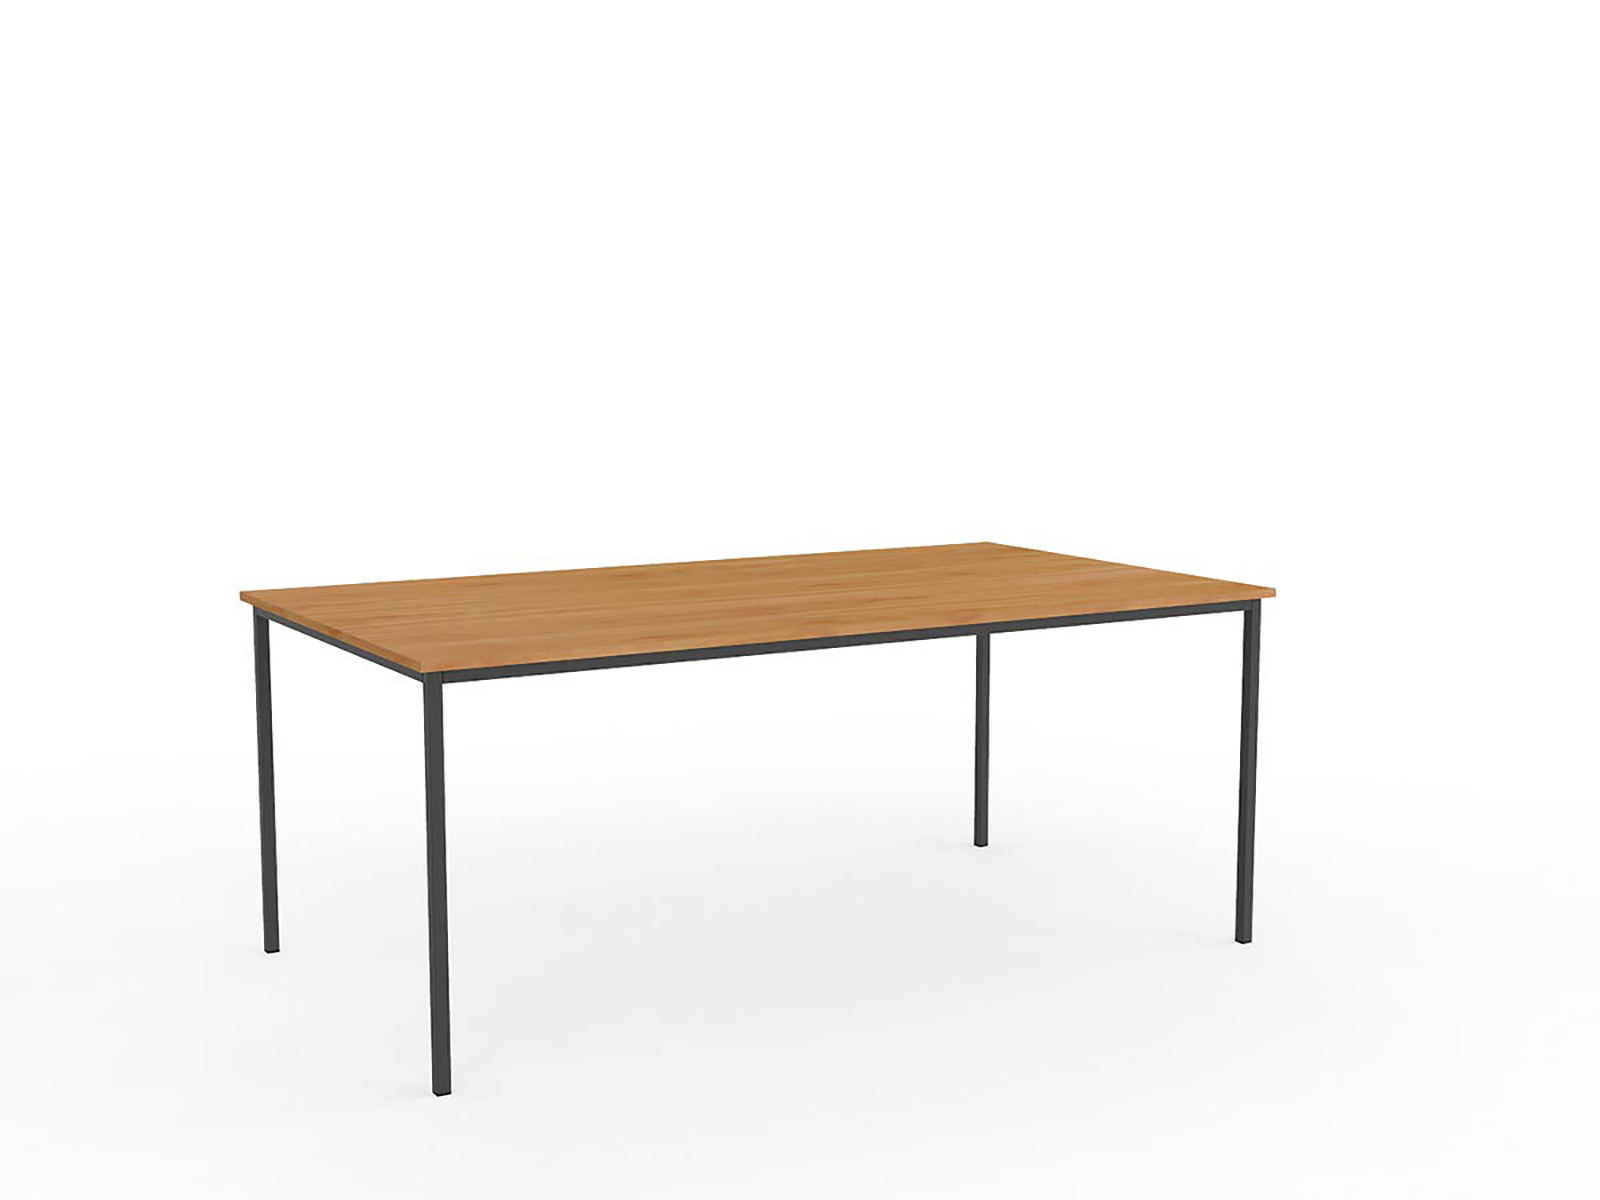 Ergoplan 1.8m Canteen Table - Workspace Furniture Home and Office Cafe Tables